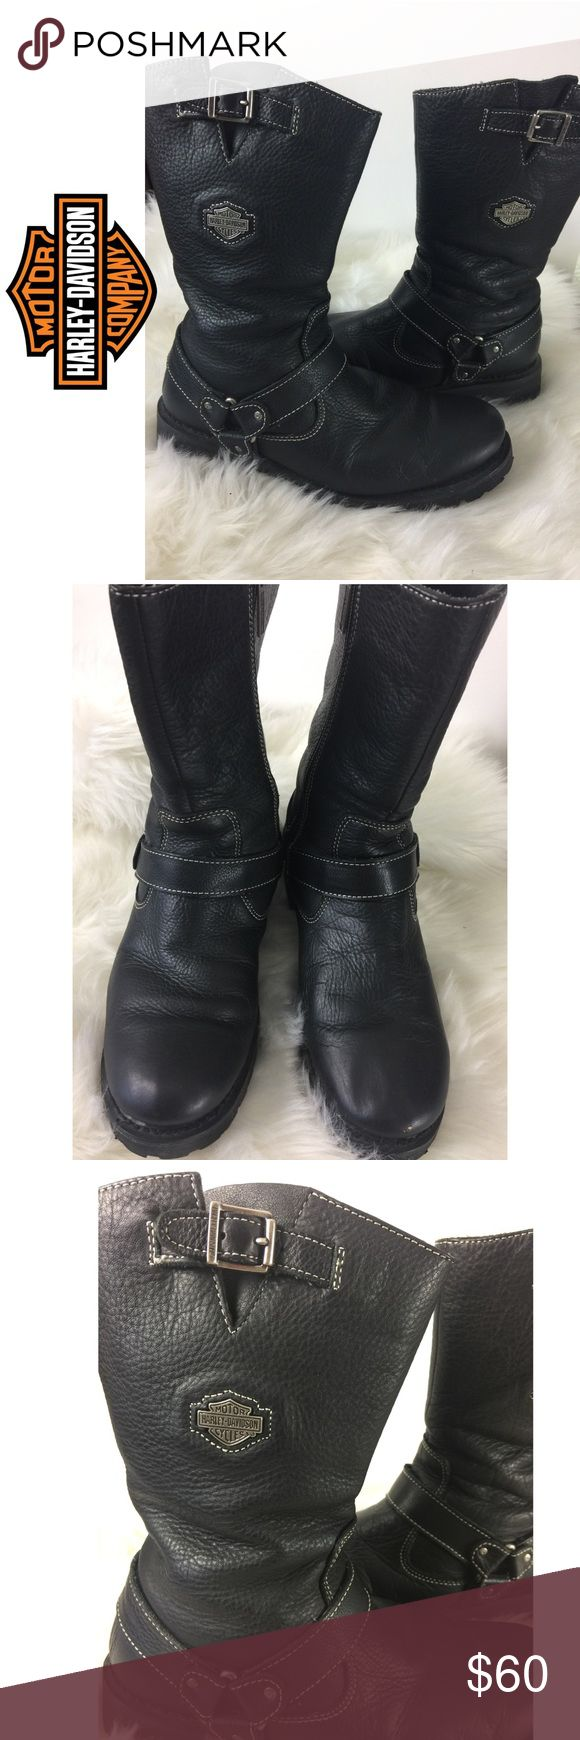 Women's Harley Davidson Boots Women's size 9 Euro 40 Harley-Davidson boots!  There are signs of wear on the inside but outside they look great !!   I ship same day if before 5 pm est otherwise I ship next day ! Harley-Davidson Shoes Combat & Moto Boots #harleydavidsonboots